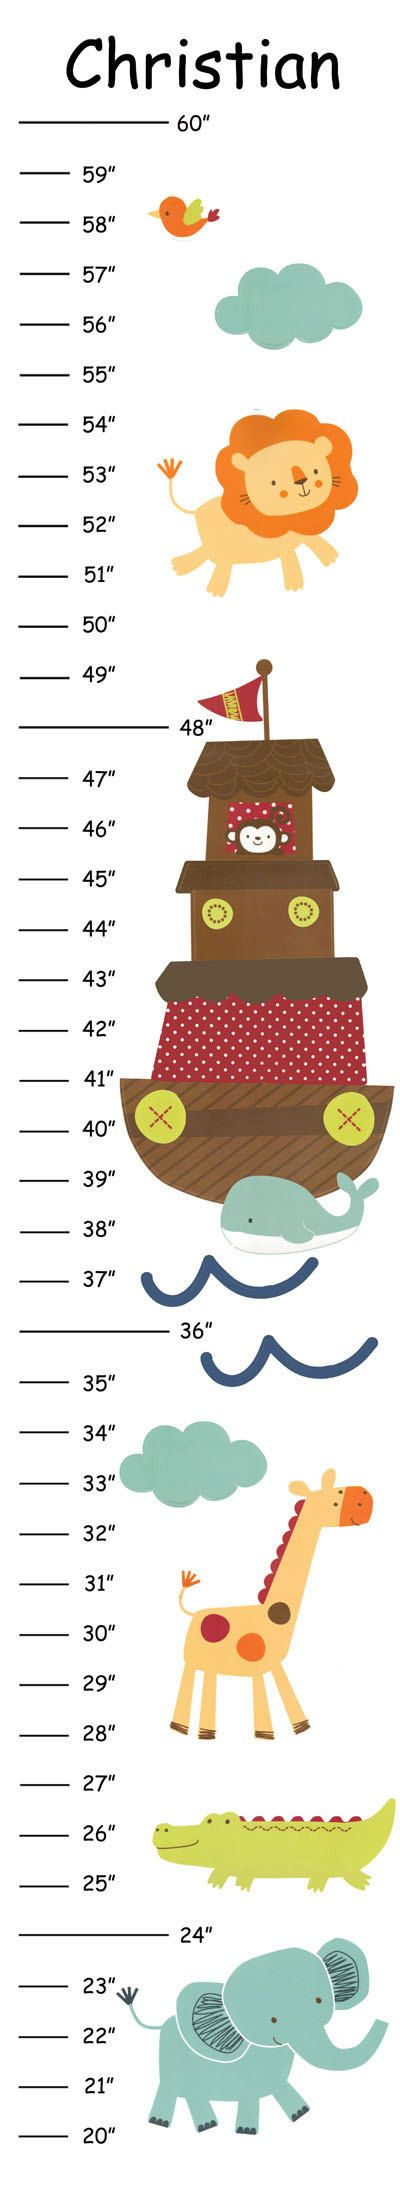 Personalized Noah's Ark Canvas Growth Chart